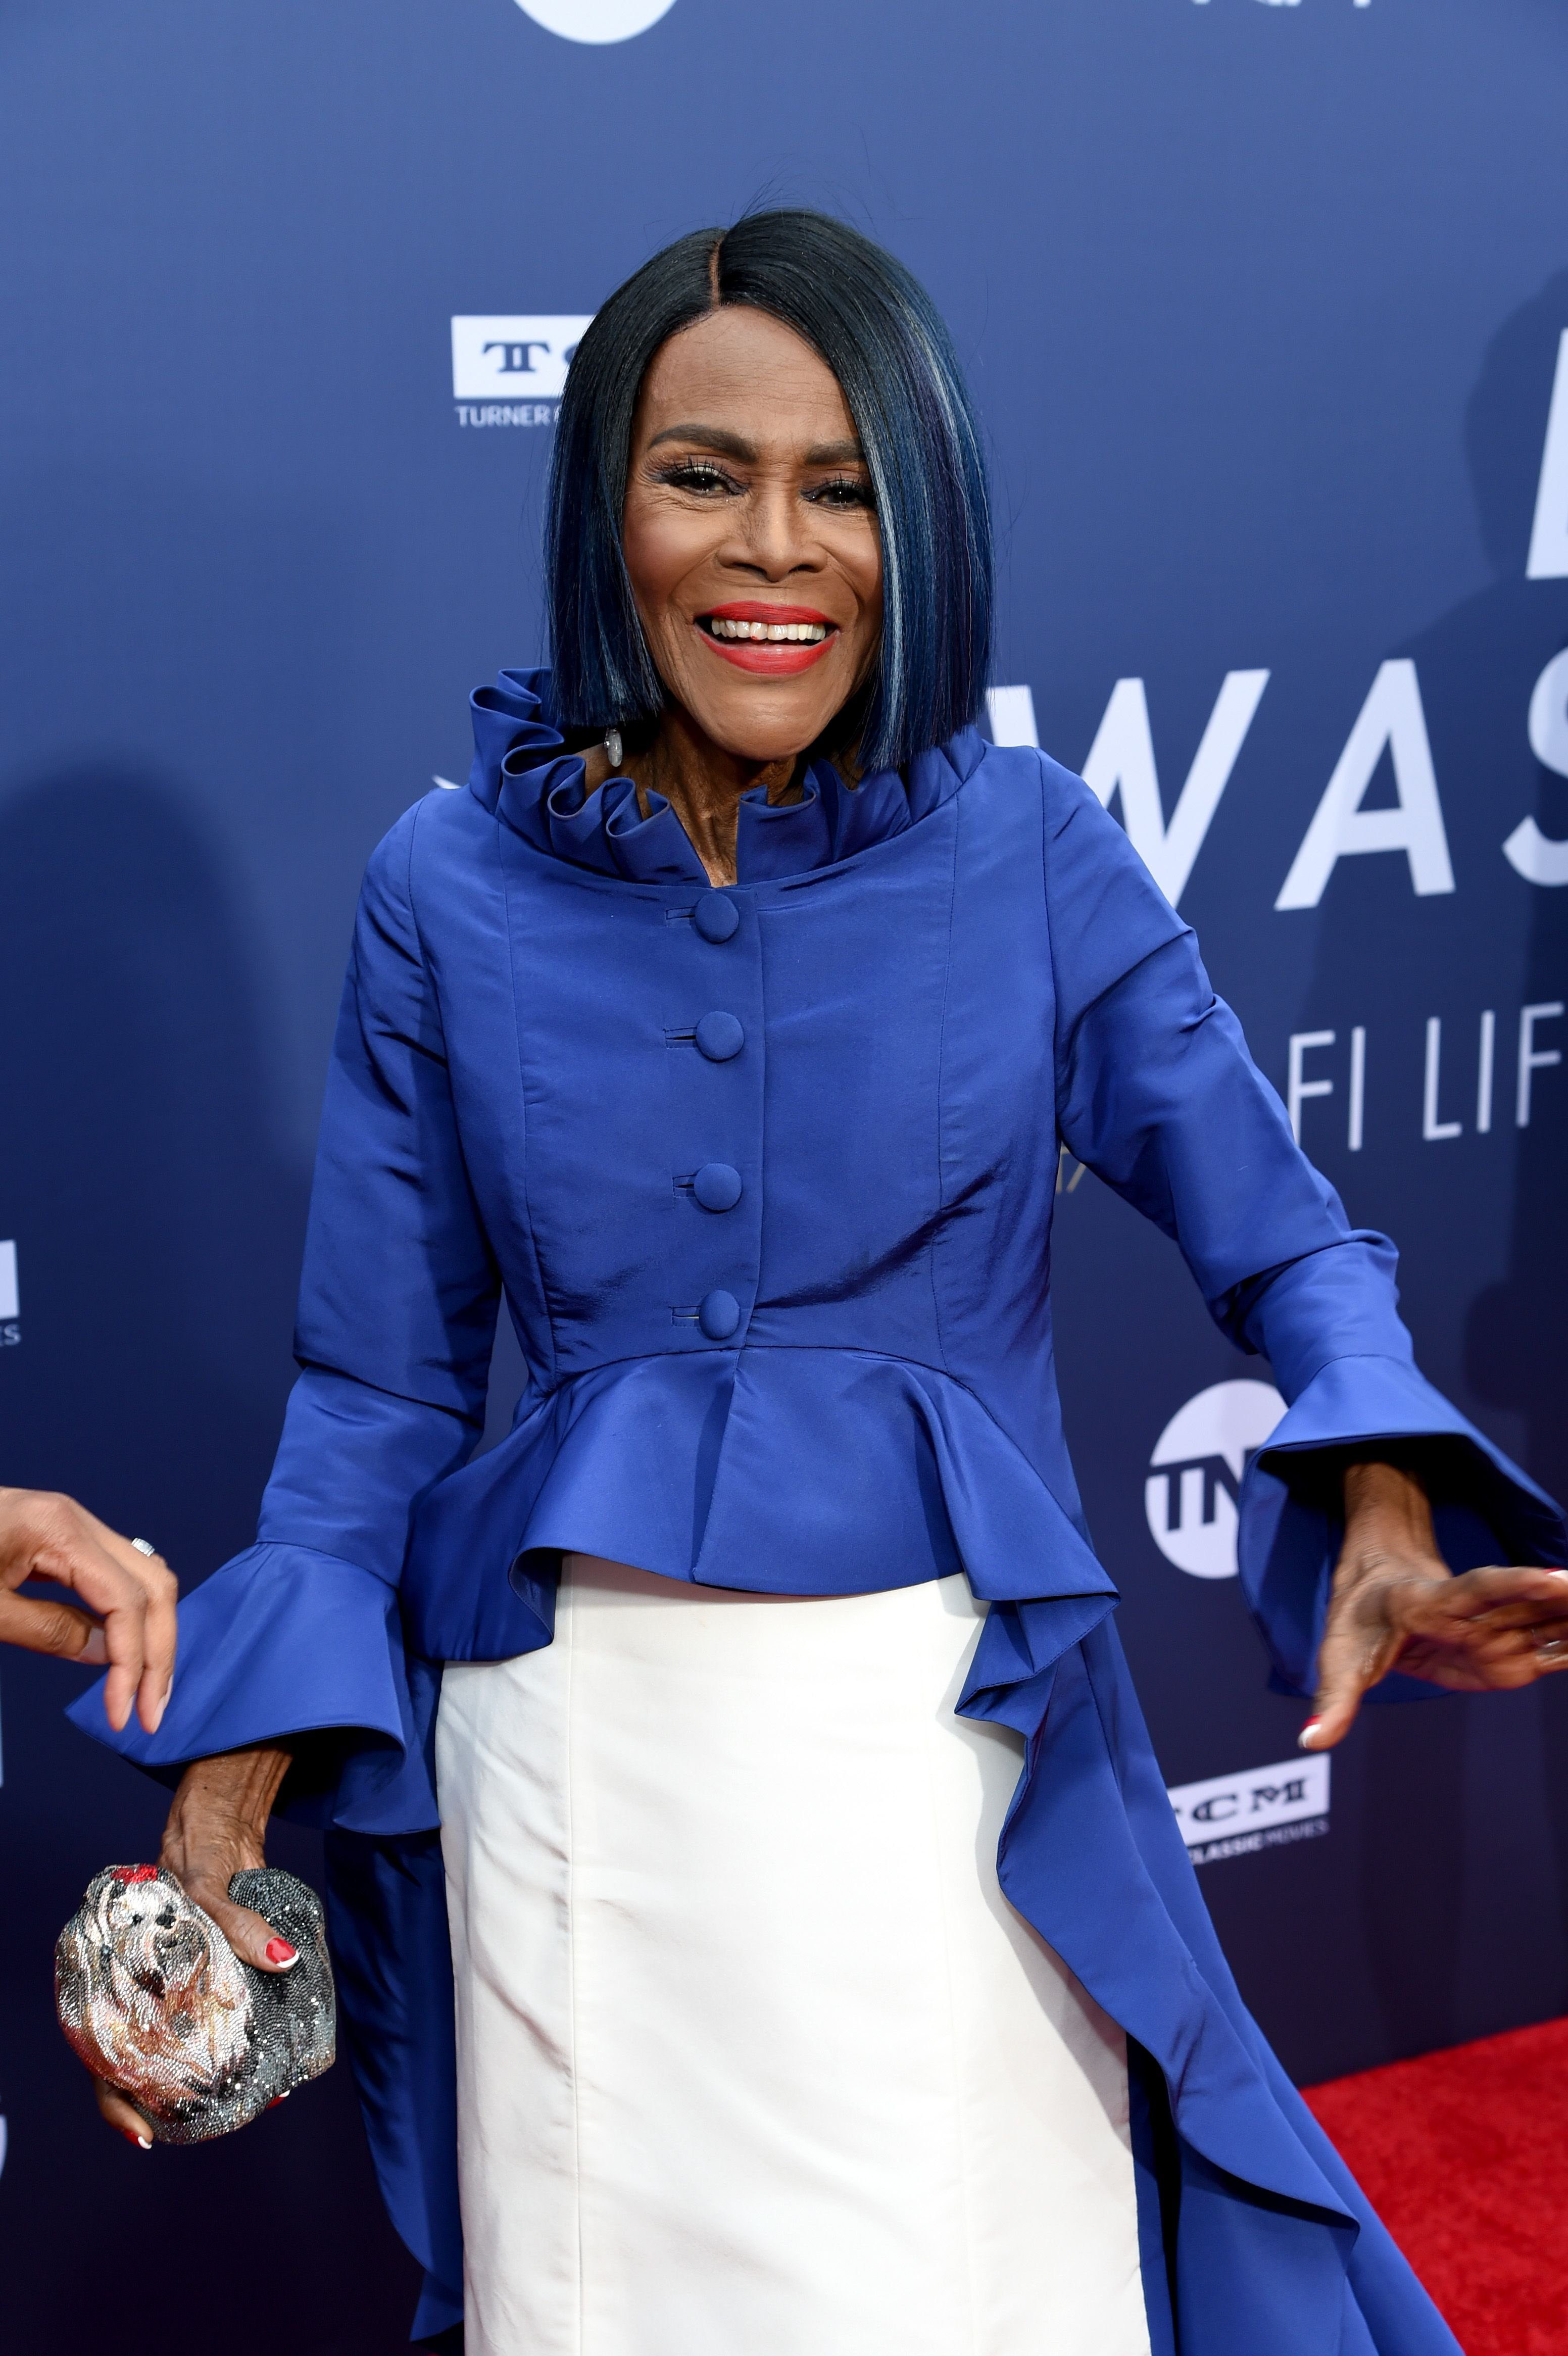 Cicely Tyson at the 47th AFI Life Achievement Award honoring Denzel Washington at Dolby Theatre on June 06, 2019 | Photo: Getty Images